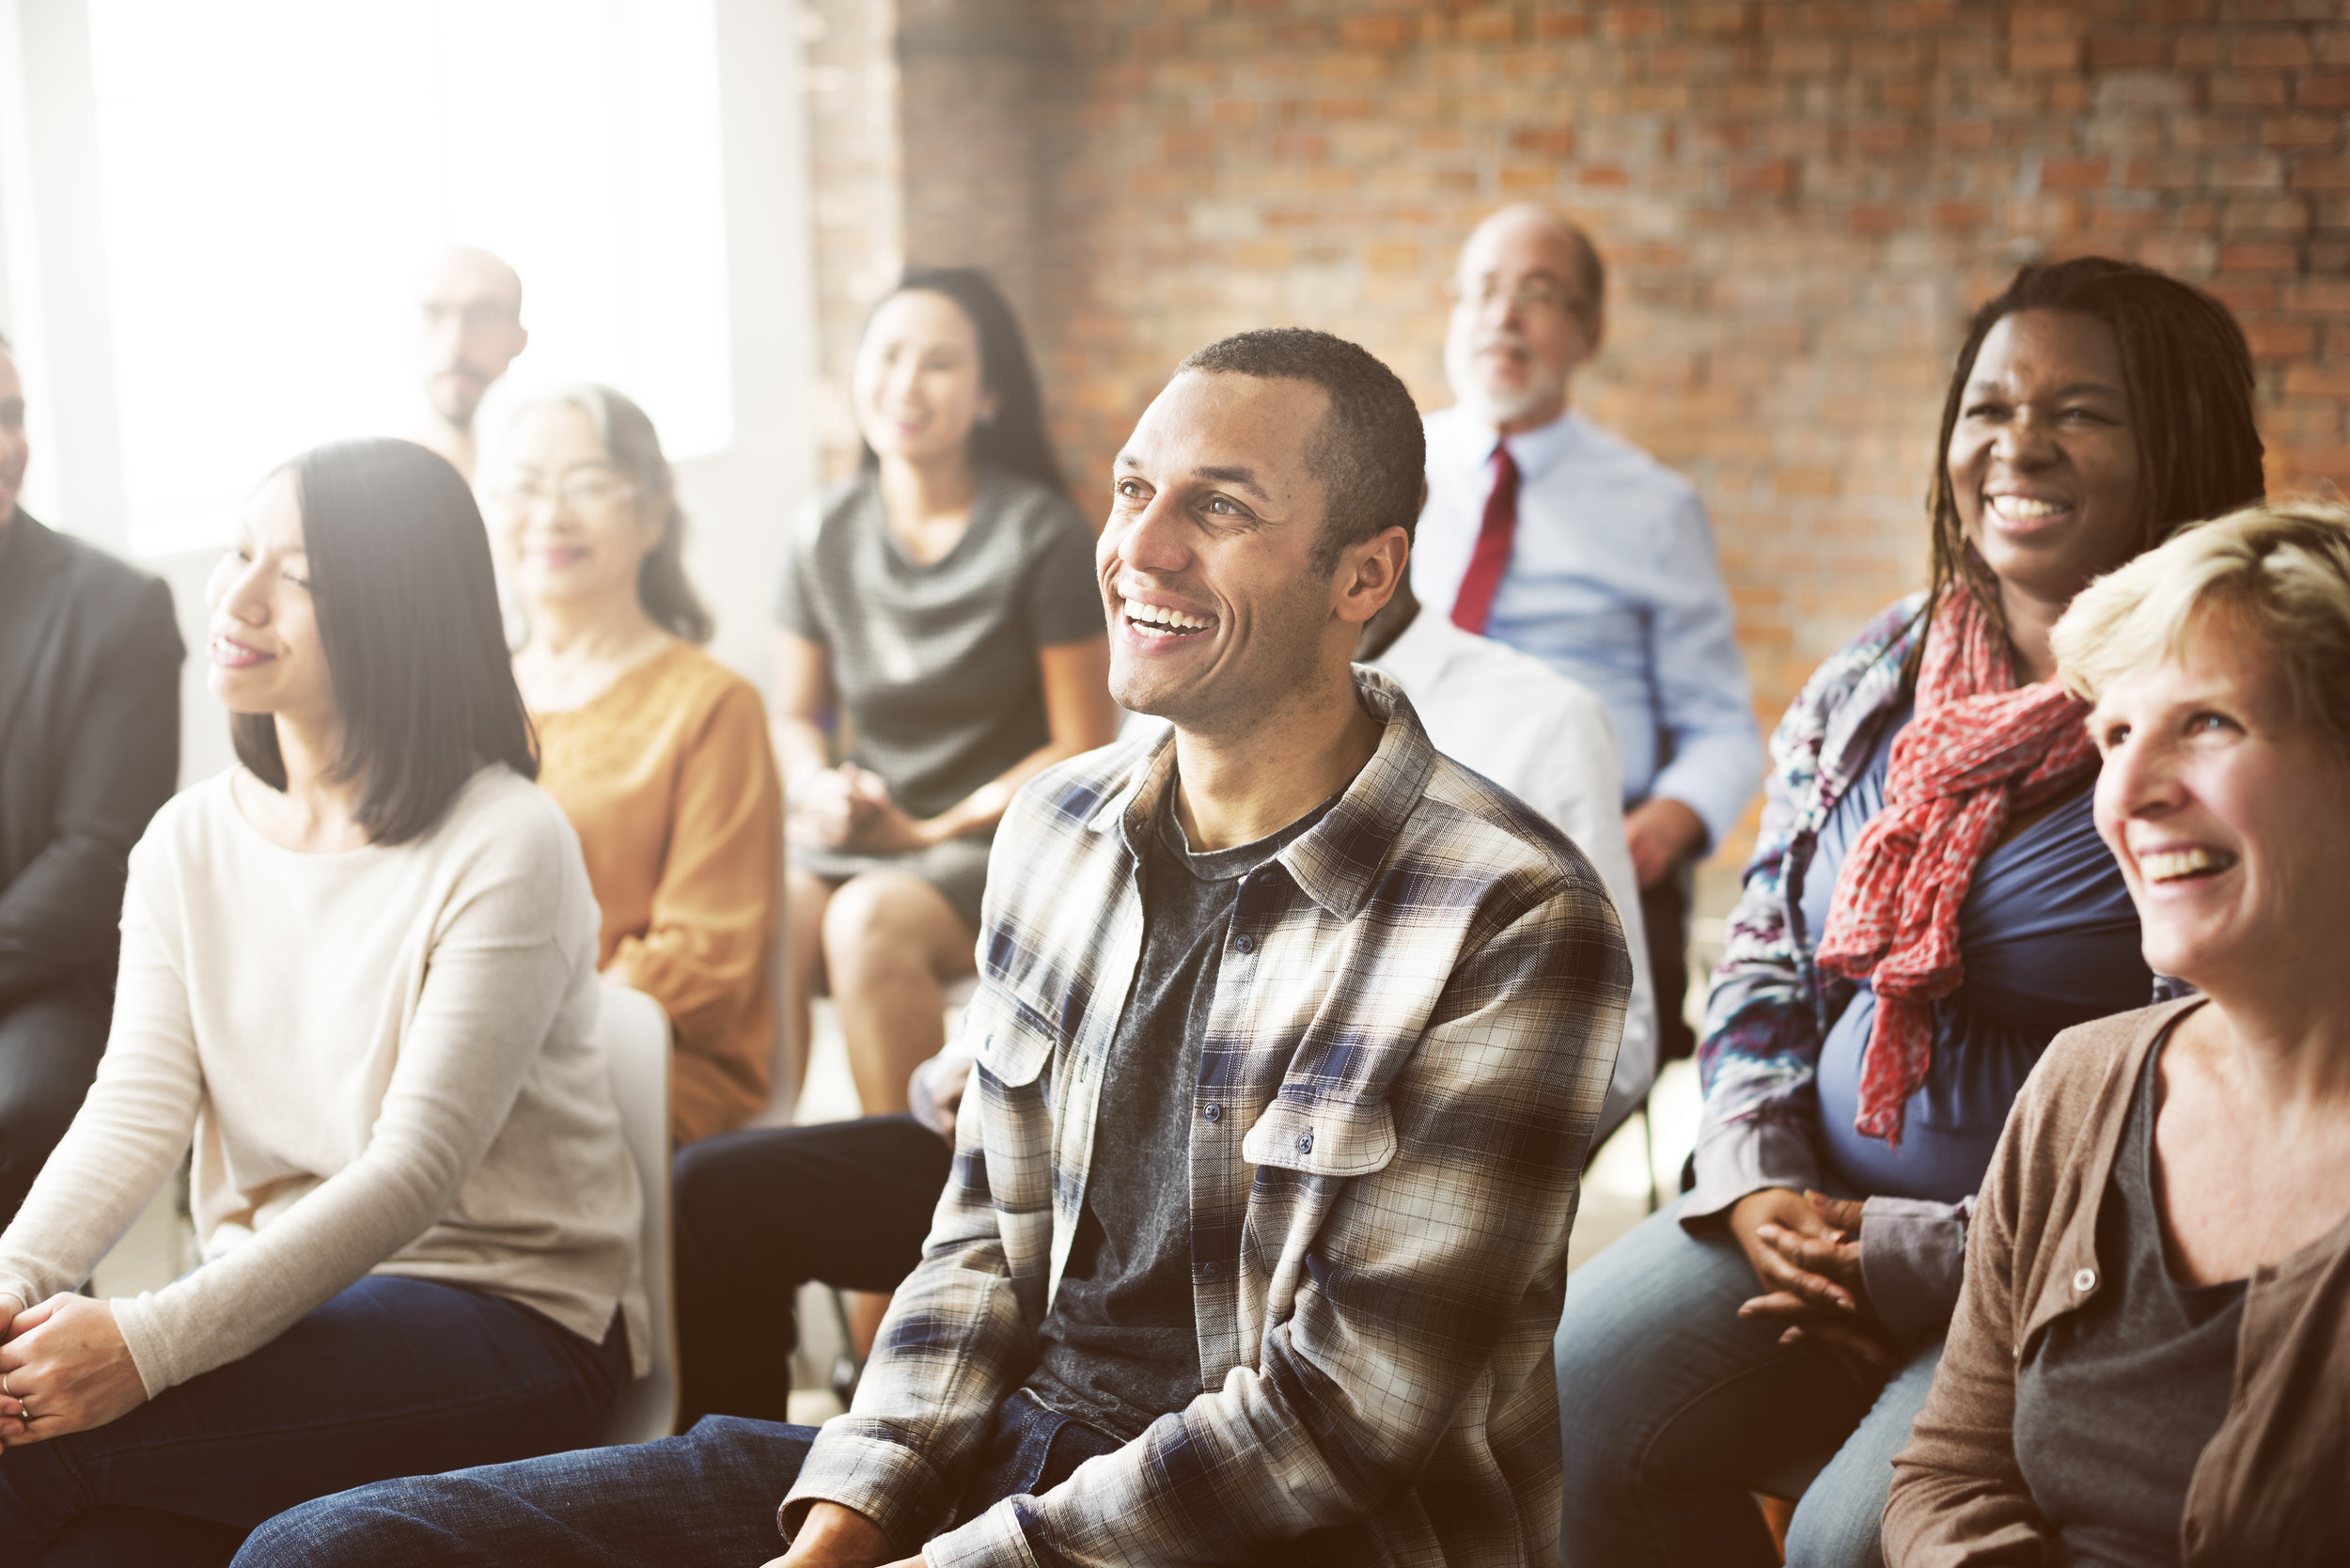 Happiness For HumanKIND Corporate Programs boost employee wellness and productivity